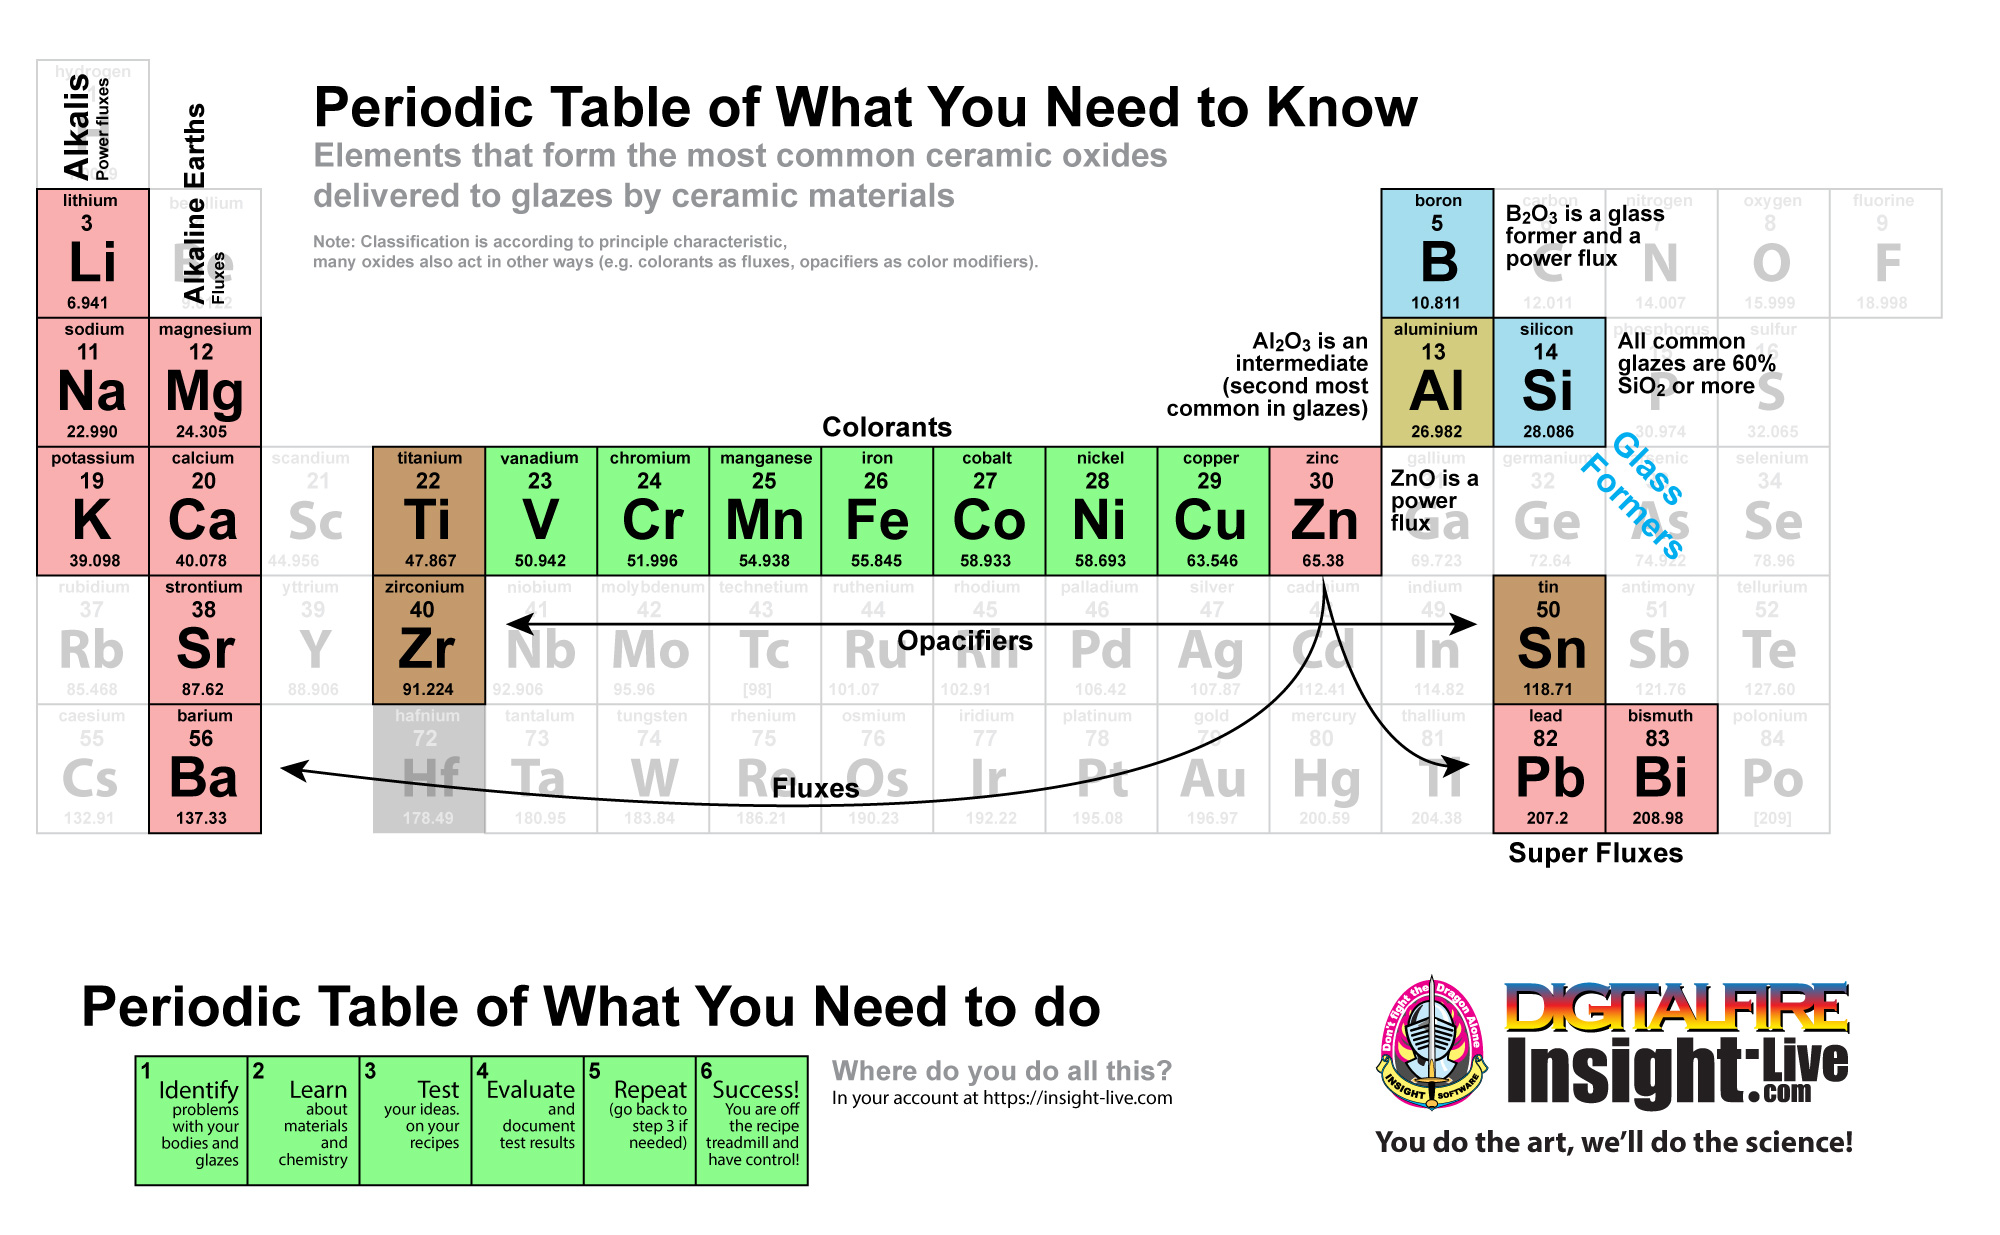 A periodic table of oxide with elements important to ceramics highlighted